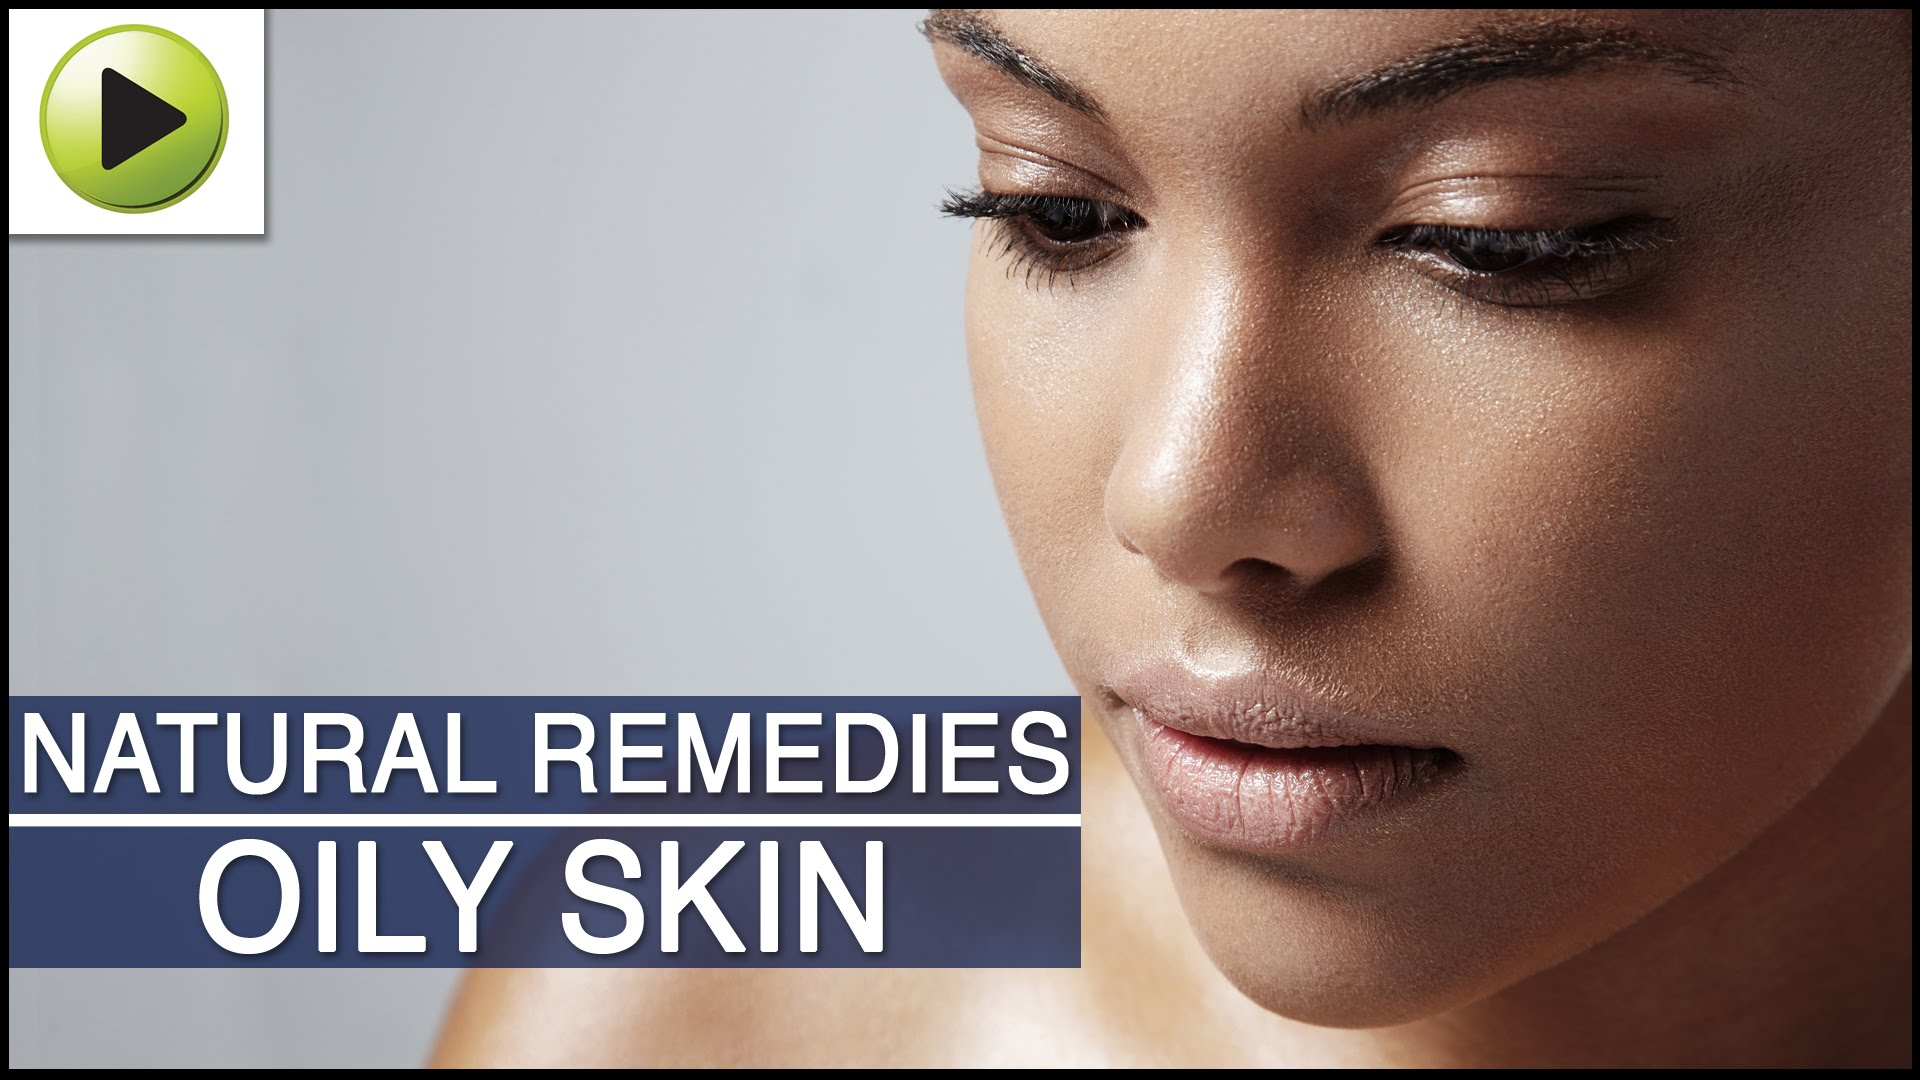 How To Treat Oily Skin Naturally At Home